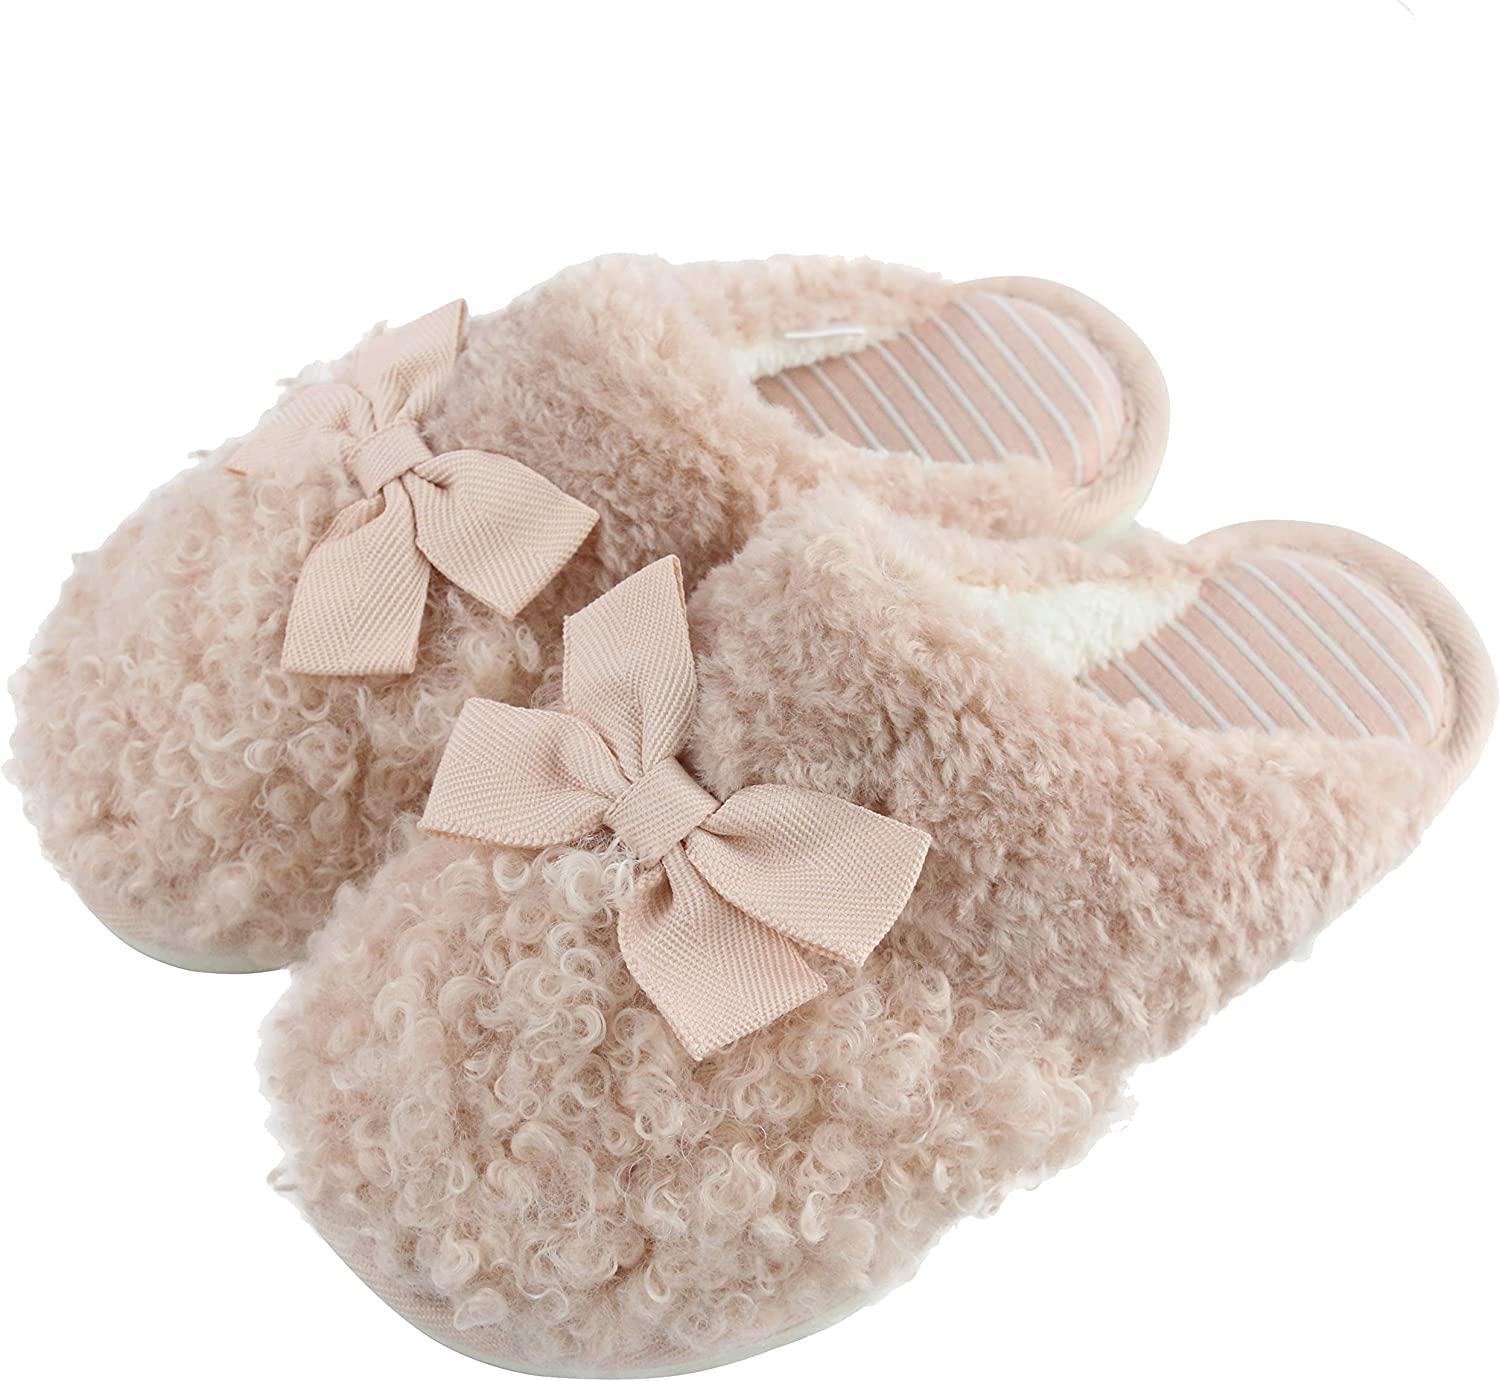 Komyufa Home Slippers for Girls Winter Womens Home Slippers Cute Slippers Bow Decor Fuzzy Slippers for Couples Indoor House Shoes